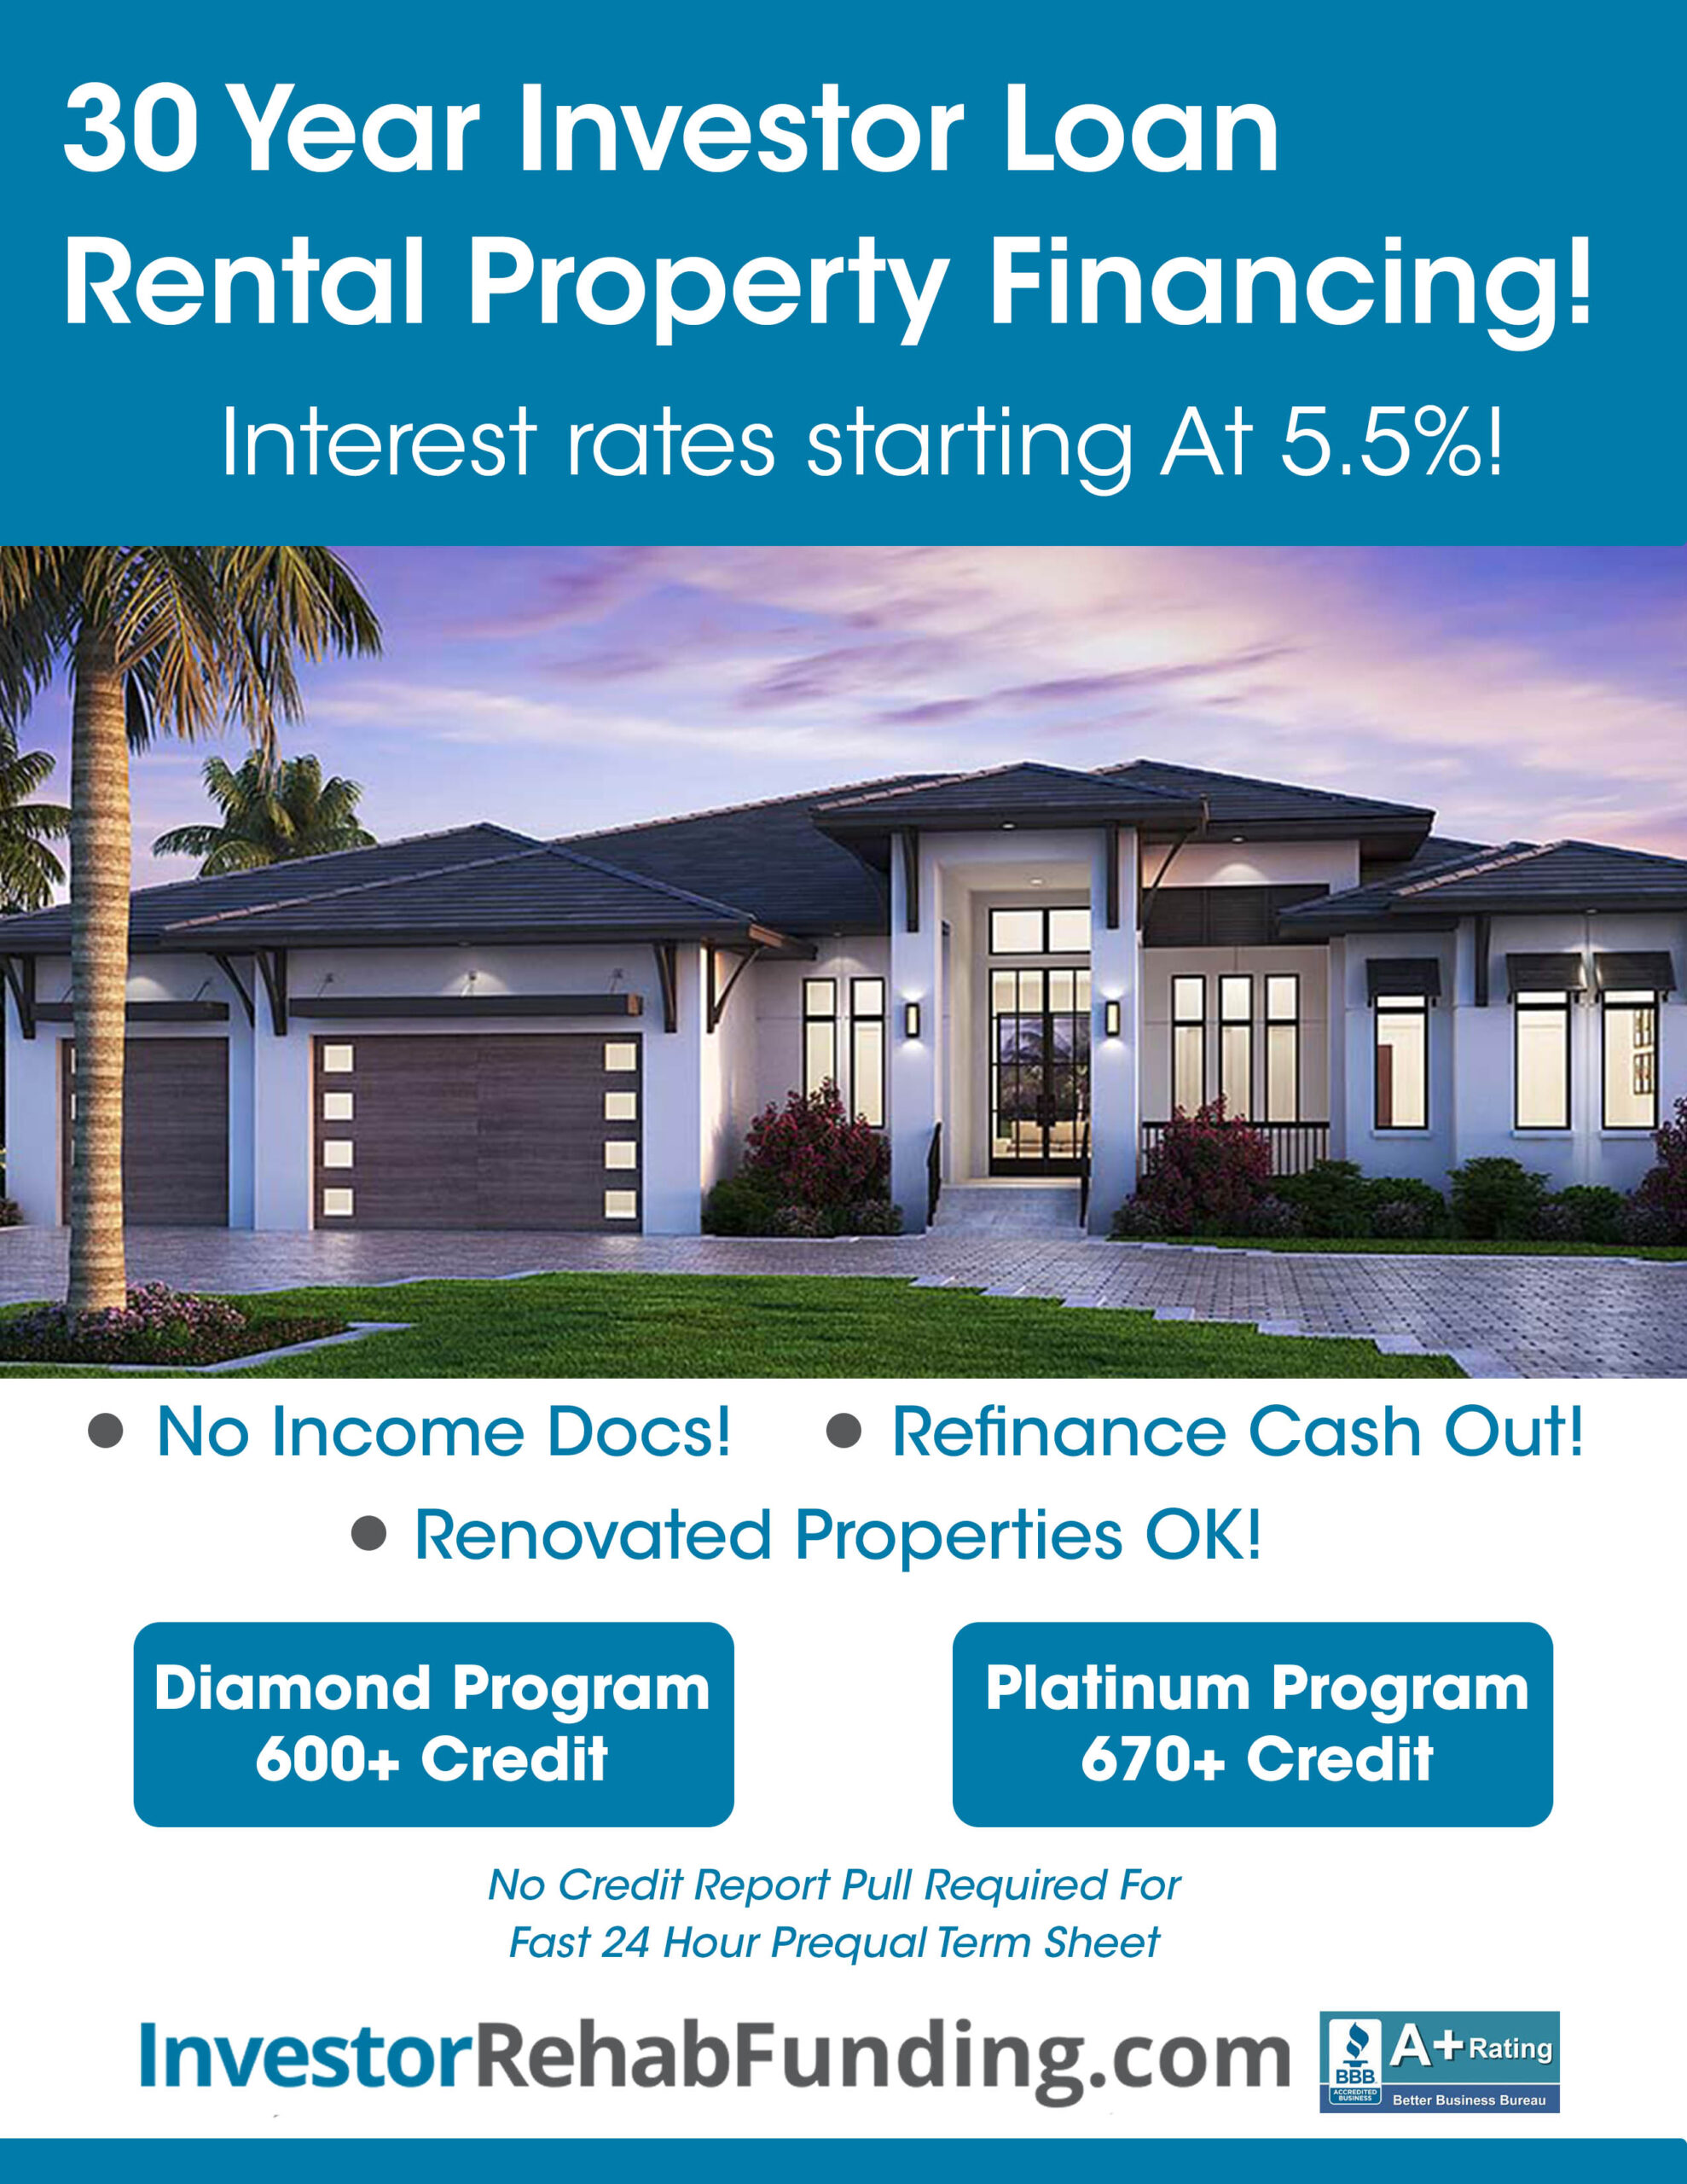 600+ Credit – 30 Year Rental Property Financing–Refinance Cash Out Up To $5,000,000!